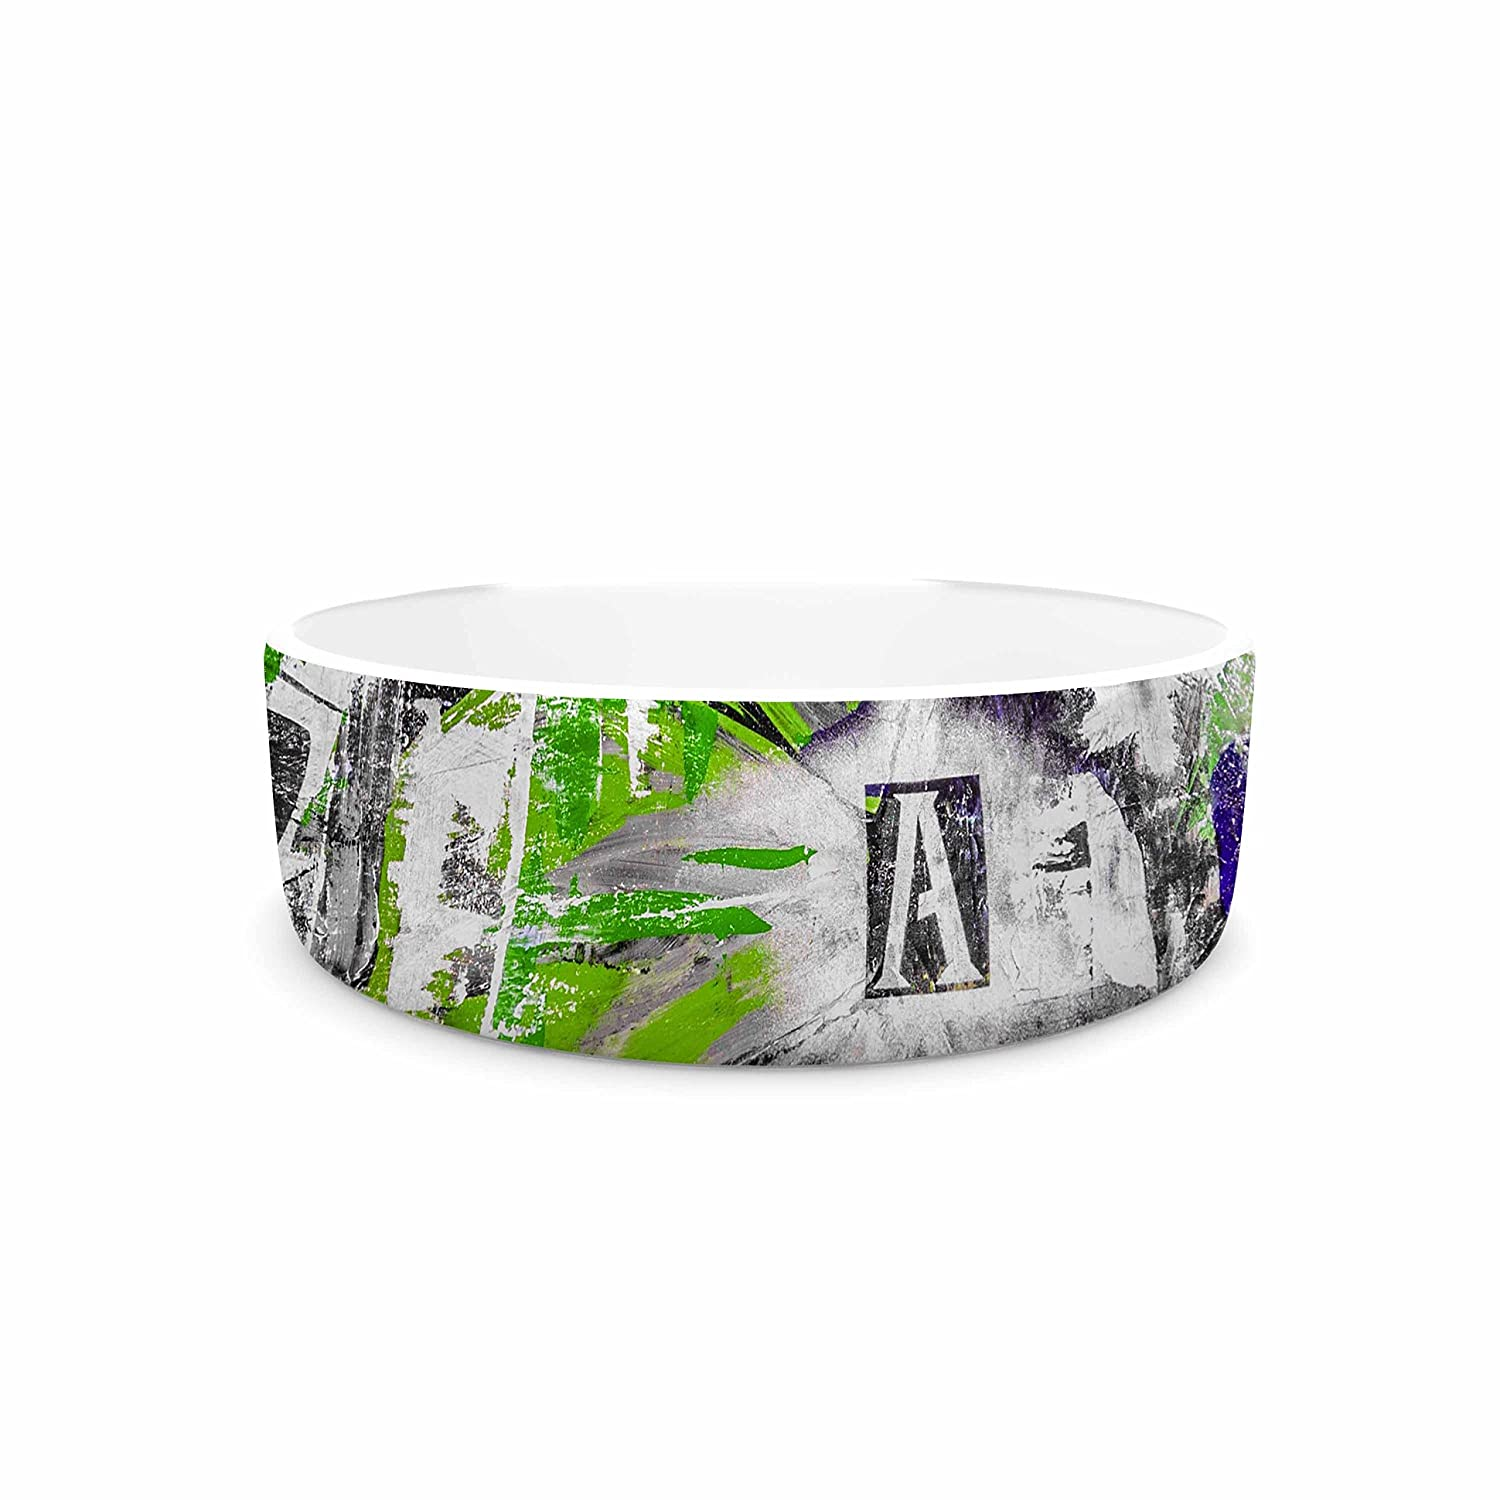 7\ KESS InHouse Bruce Stanfield Life through Adversity 2  Green Abstract Pet Bowl, 7